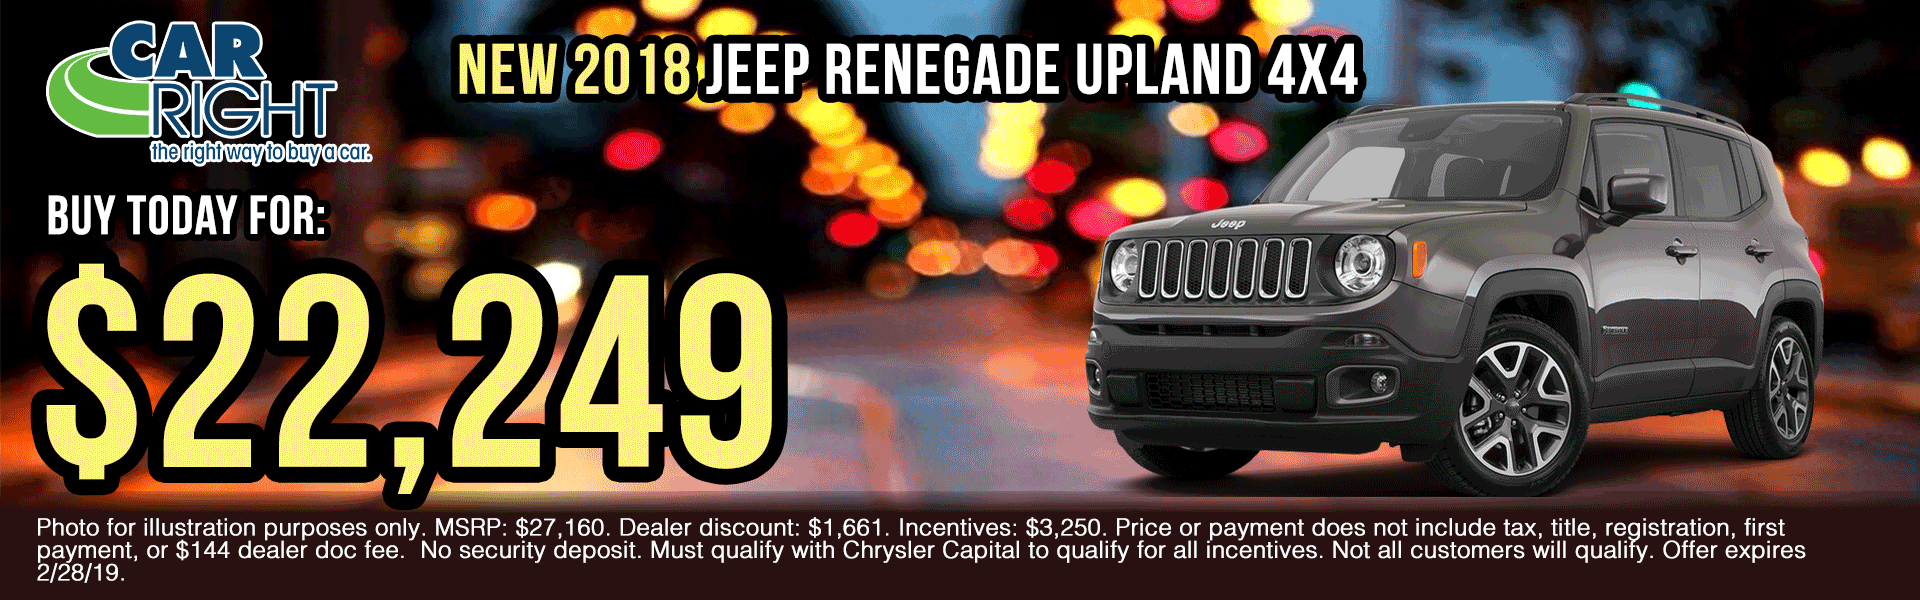 V2859-2018-jeep-renegade-upland-4x4 presidents day sales event Ram truck month new vehicle specials ram specials carright specials carright Chrysler dodge jeep ram moon township Chrysler specials jeep specials dodge specials truck specials lease specials